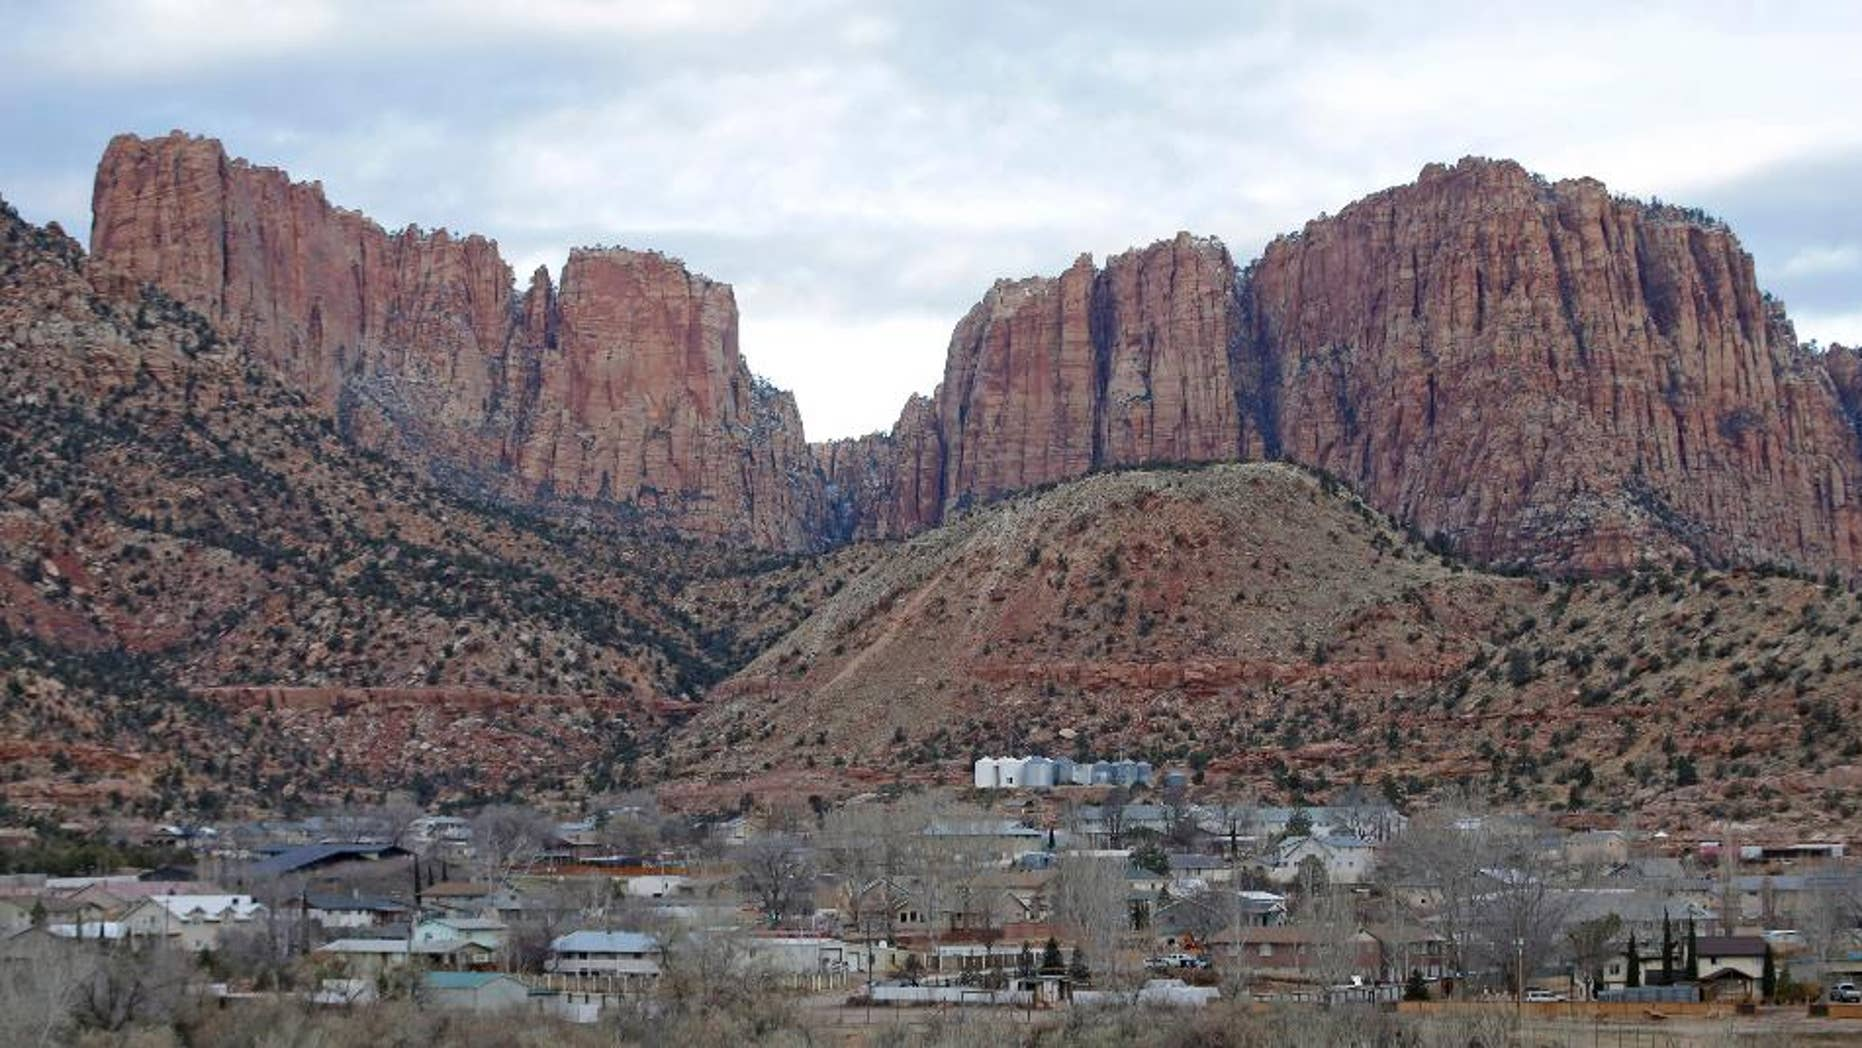 FILE - This Dec. 16, 2014, file photo, shows Hildale, Utah, sitting at the base of Red Rock Cliff mountains, with its sister city, Colorado City, Ariz., in the foreground. The federal government's bid to dismantle the police department in a polygamous community on the Arizona-Utah border has been rejected by a judge as too drastic and expensive. But the towns will still be under court supervision for the next decade as punishment in a religious discrimination case. (AP Photo/Rick Bowmer, File)